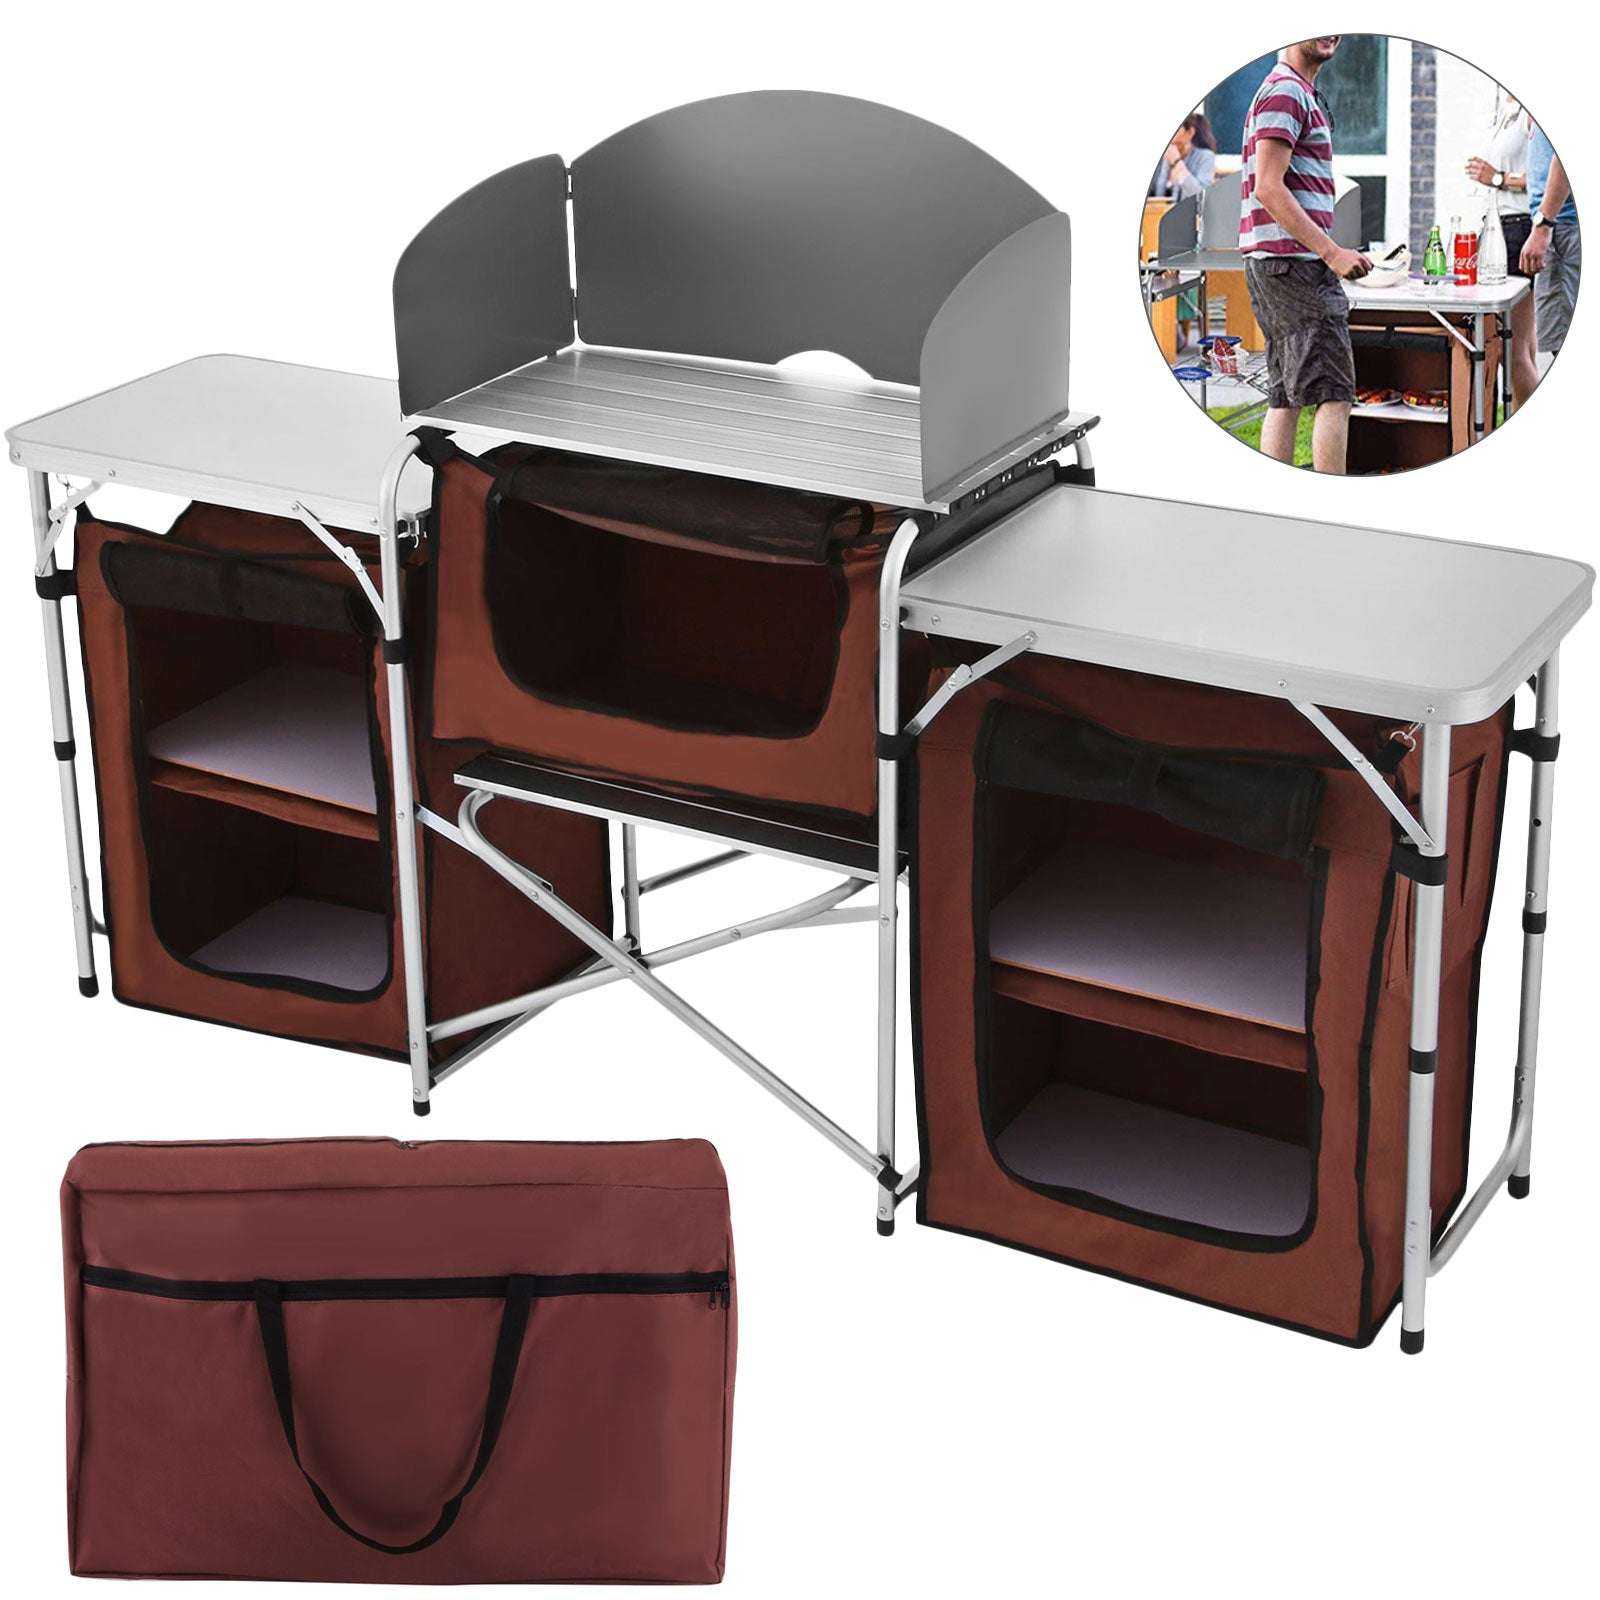 Camping Kitchen Stand Portable Cooking Cabinet Storage ...